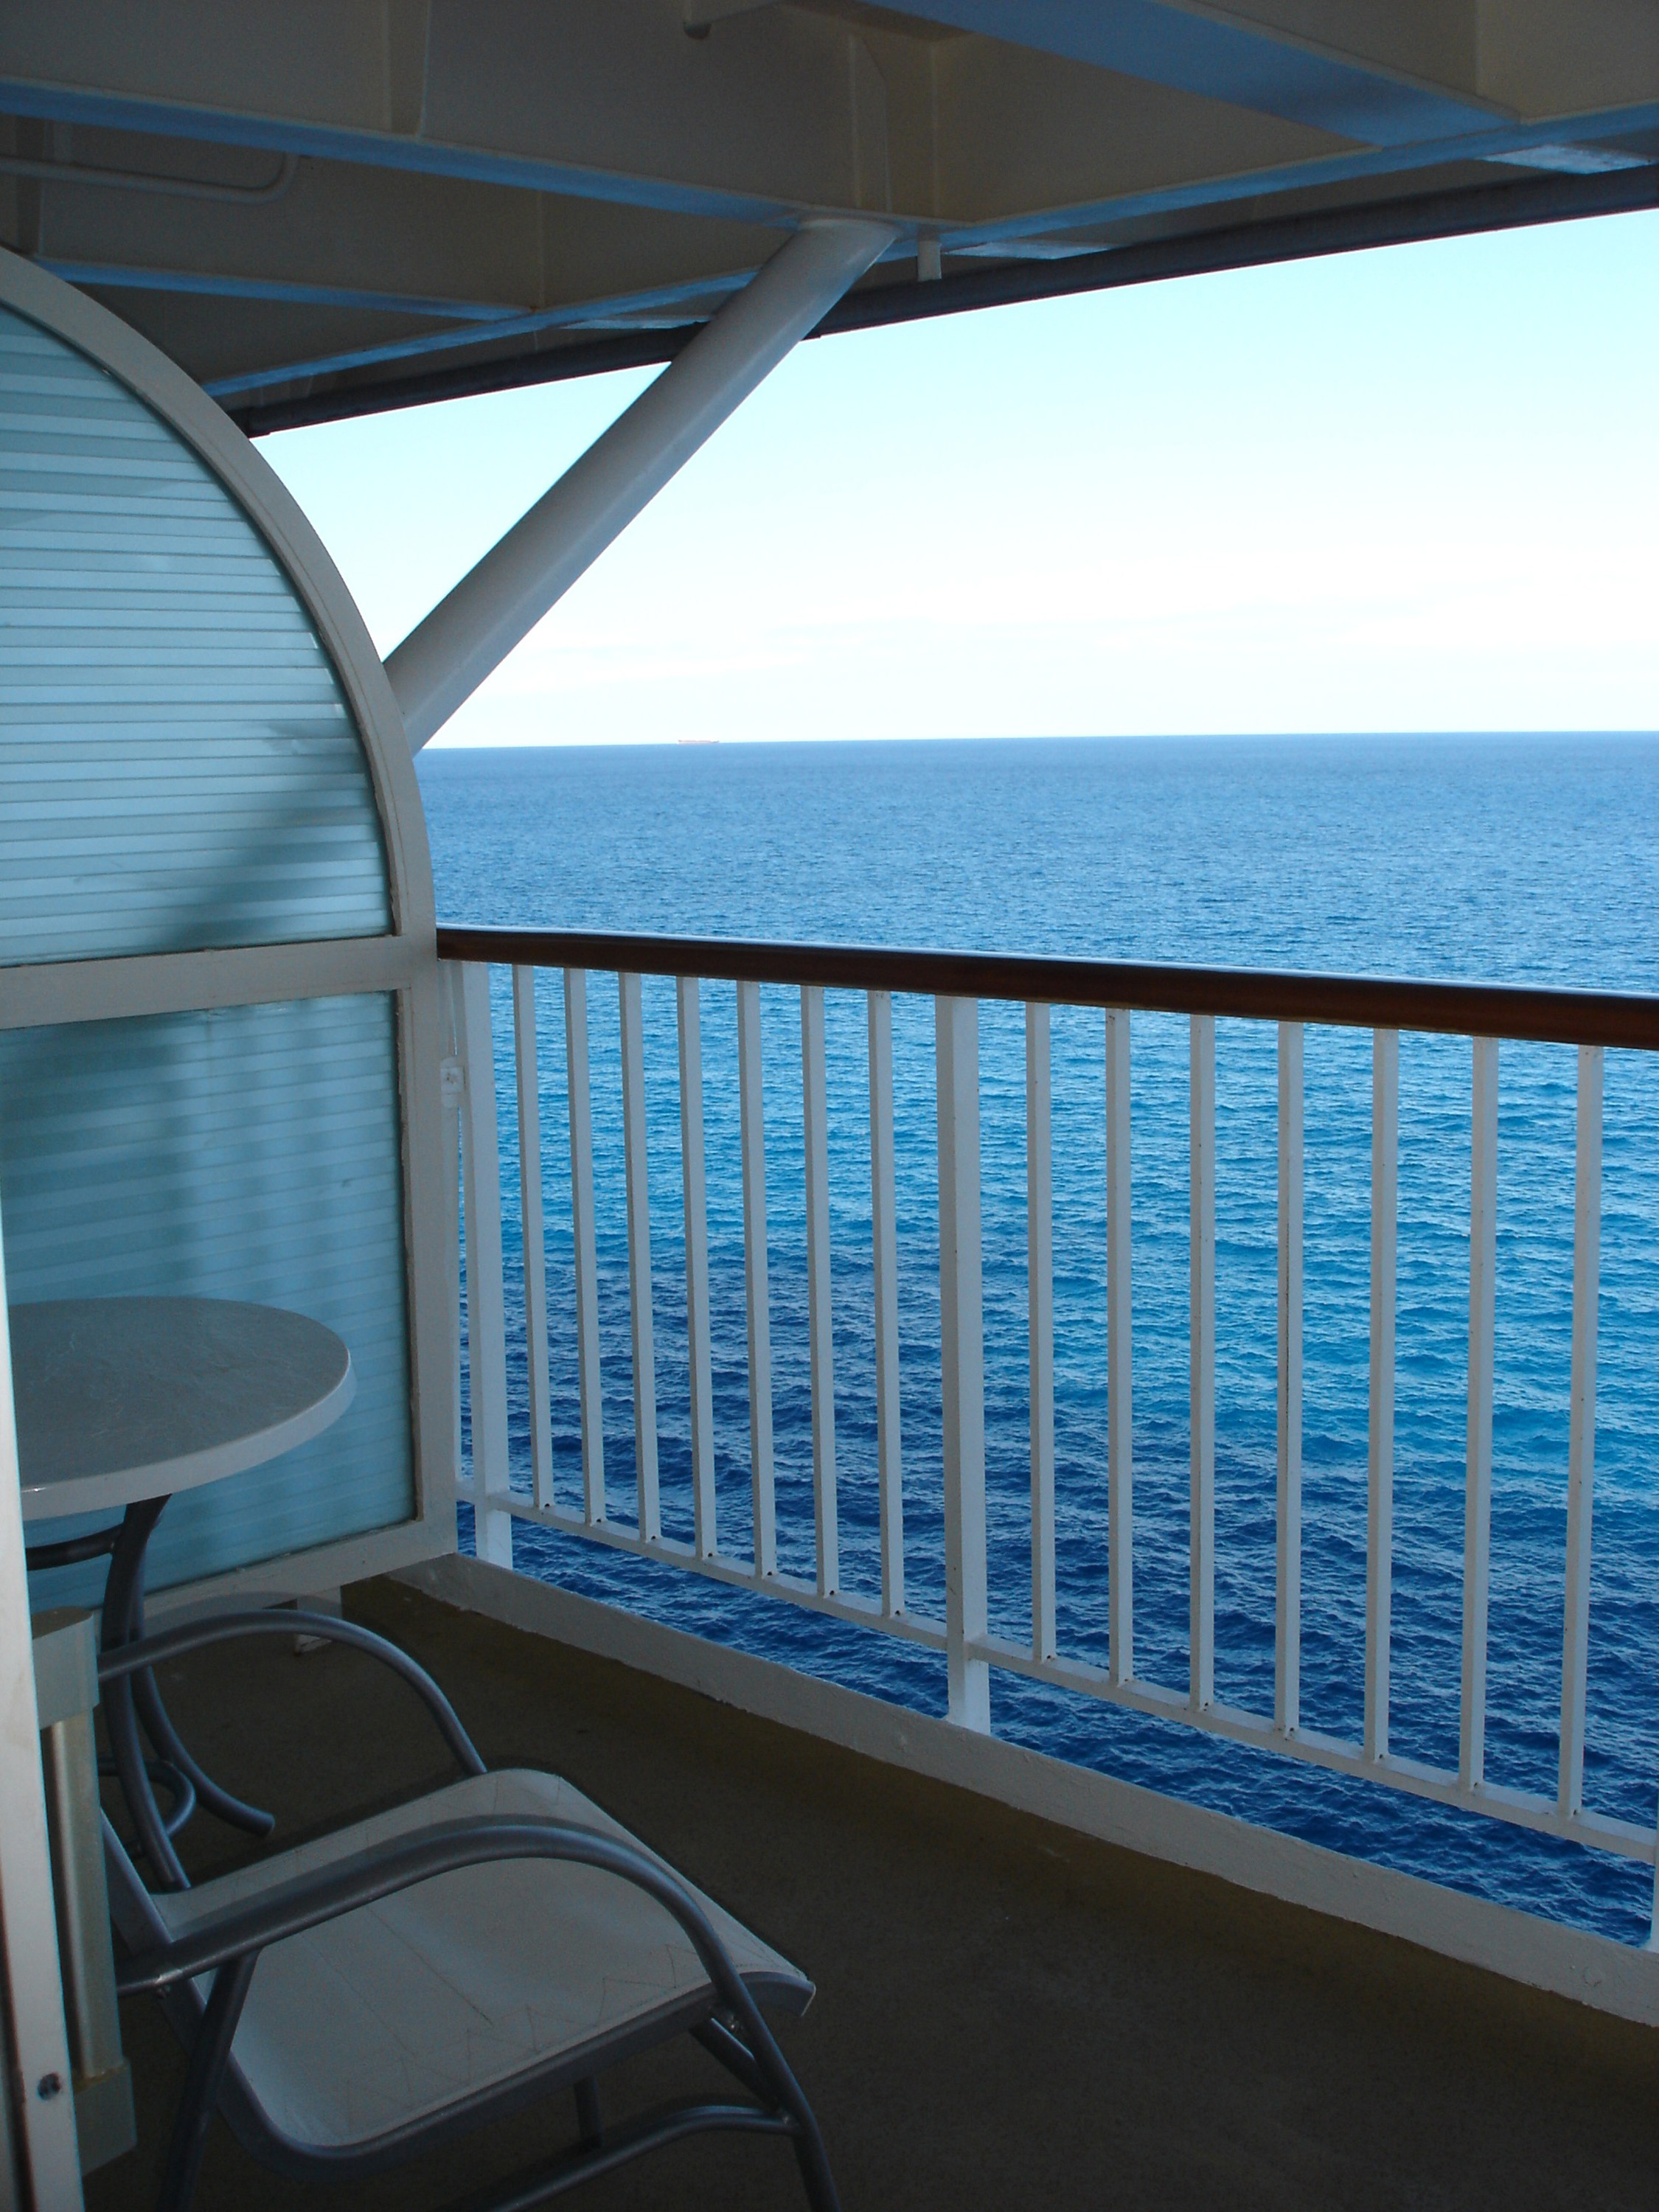 Free stock photo 6519 view from a ships balcony for Cruise ship balcony room